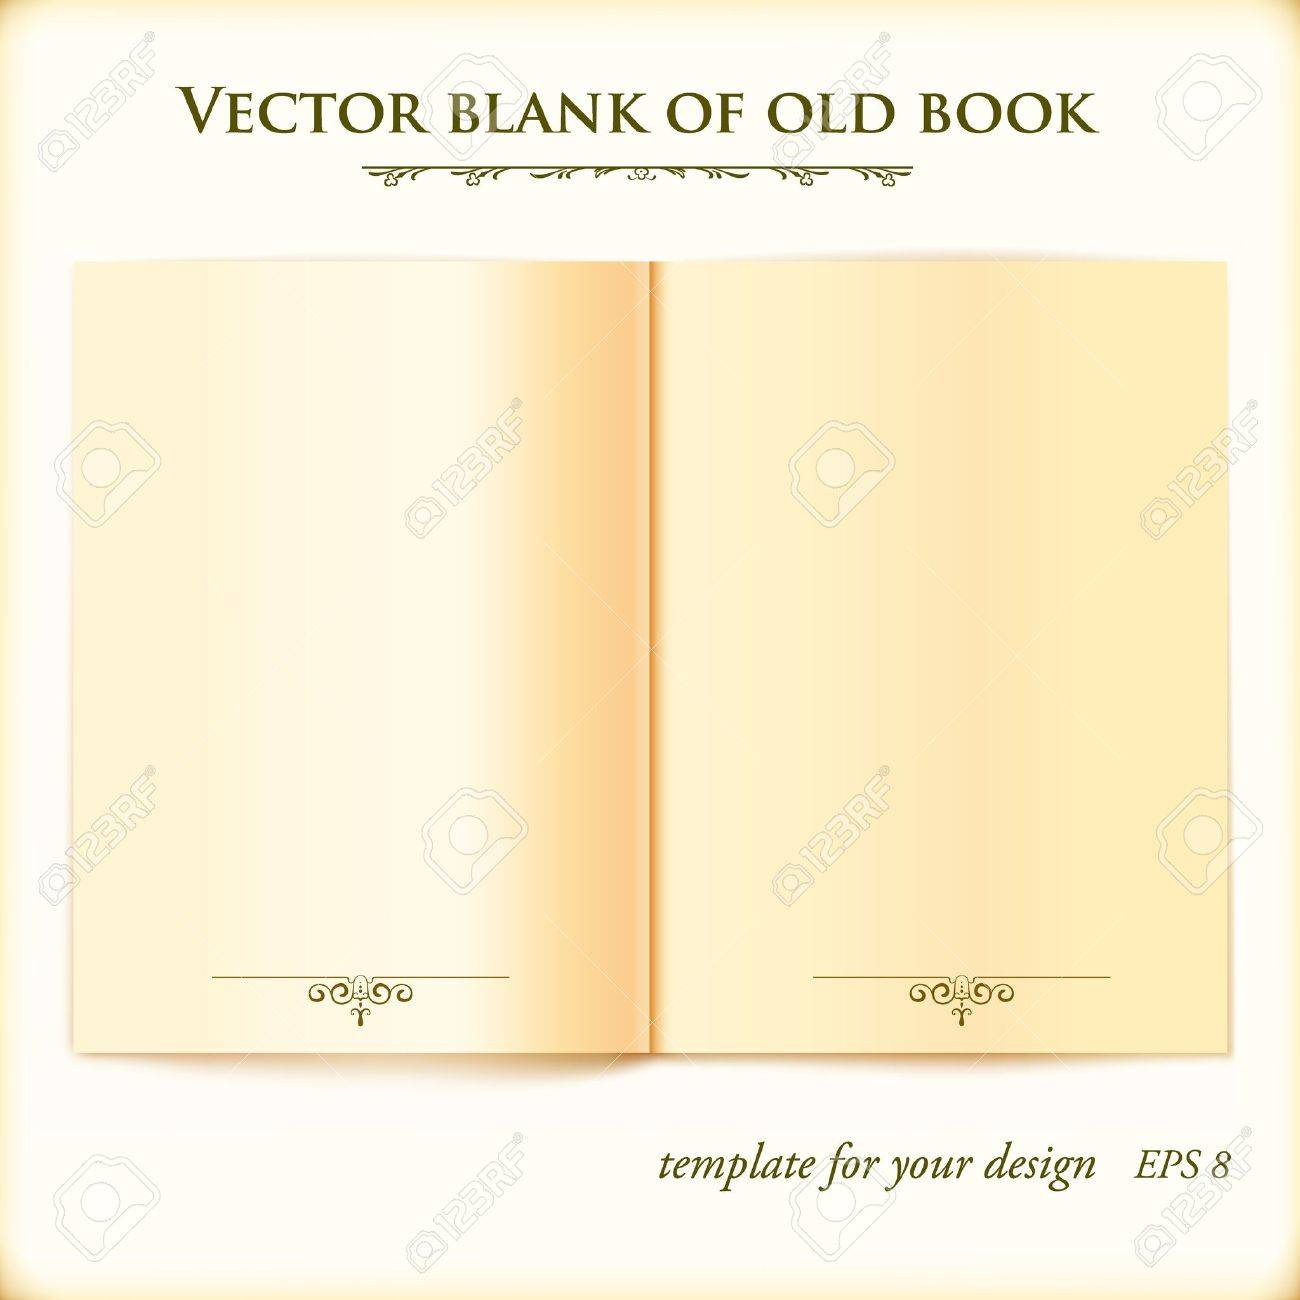 open old book illustration template for your design royalty free